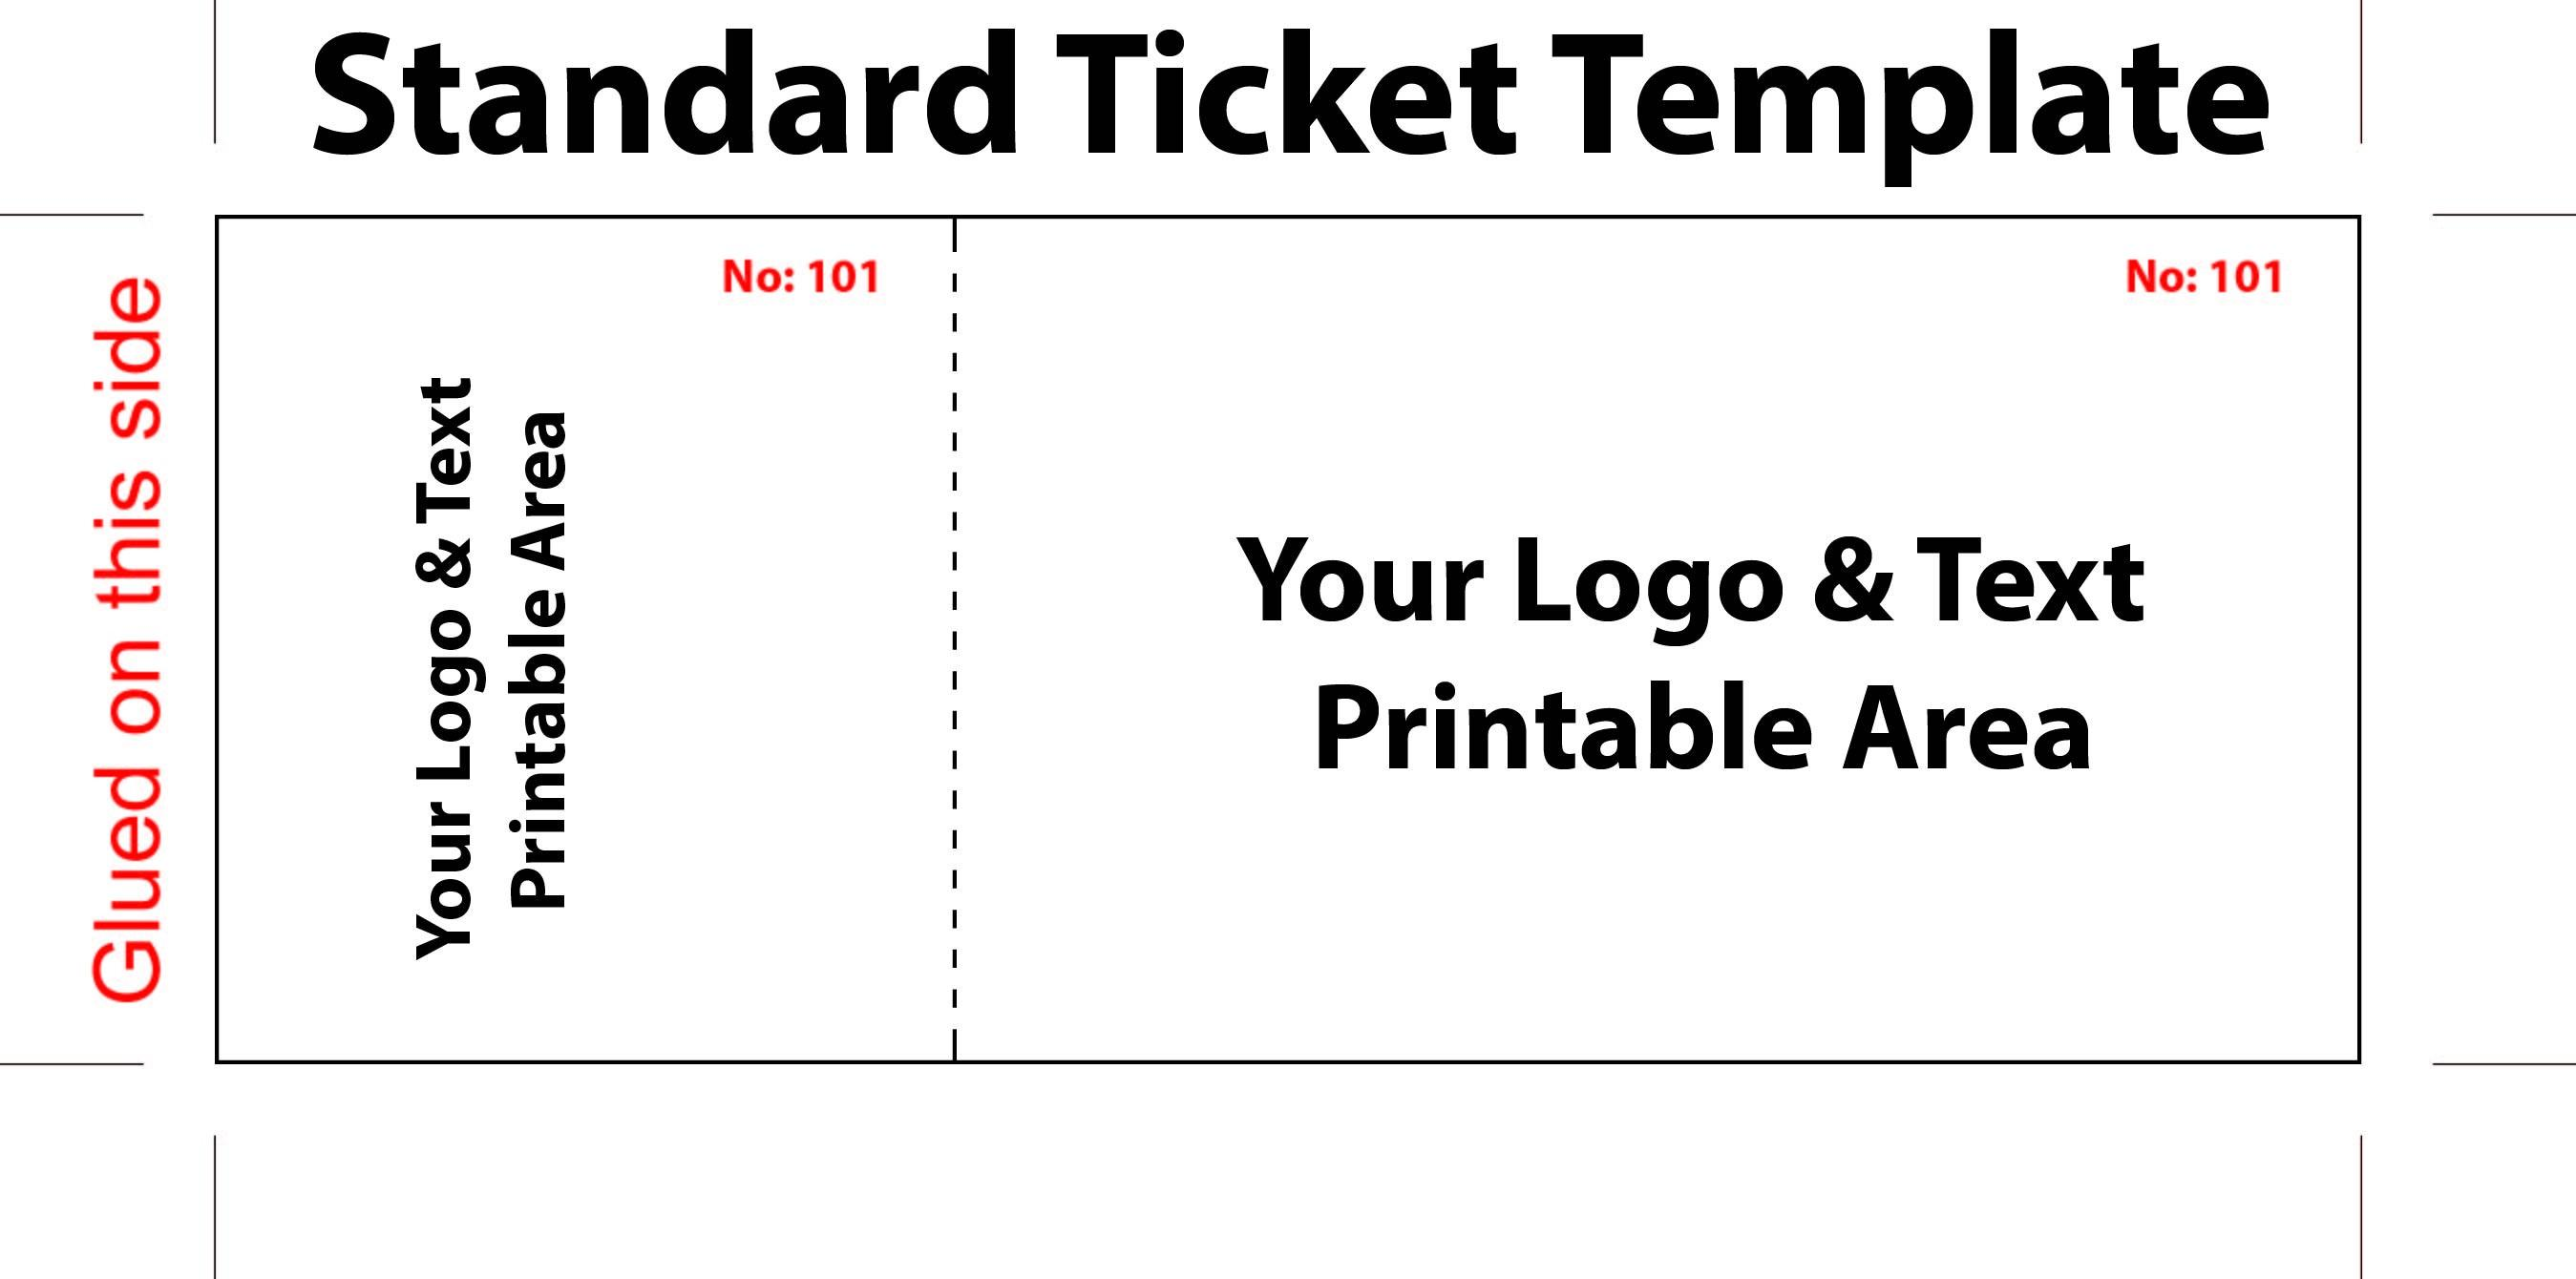 Concert Ticket Template Google Docs